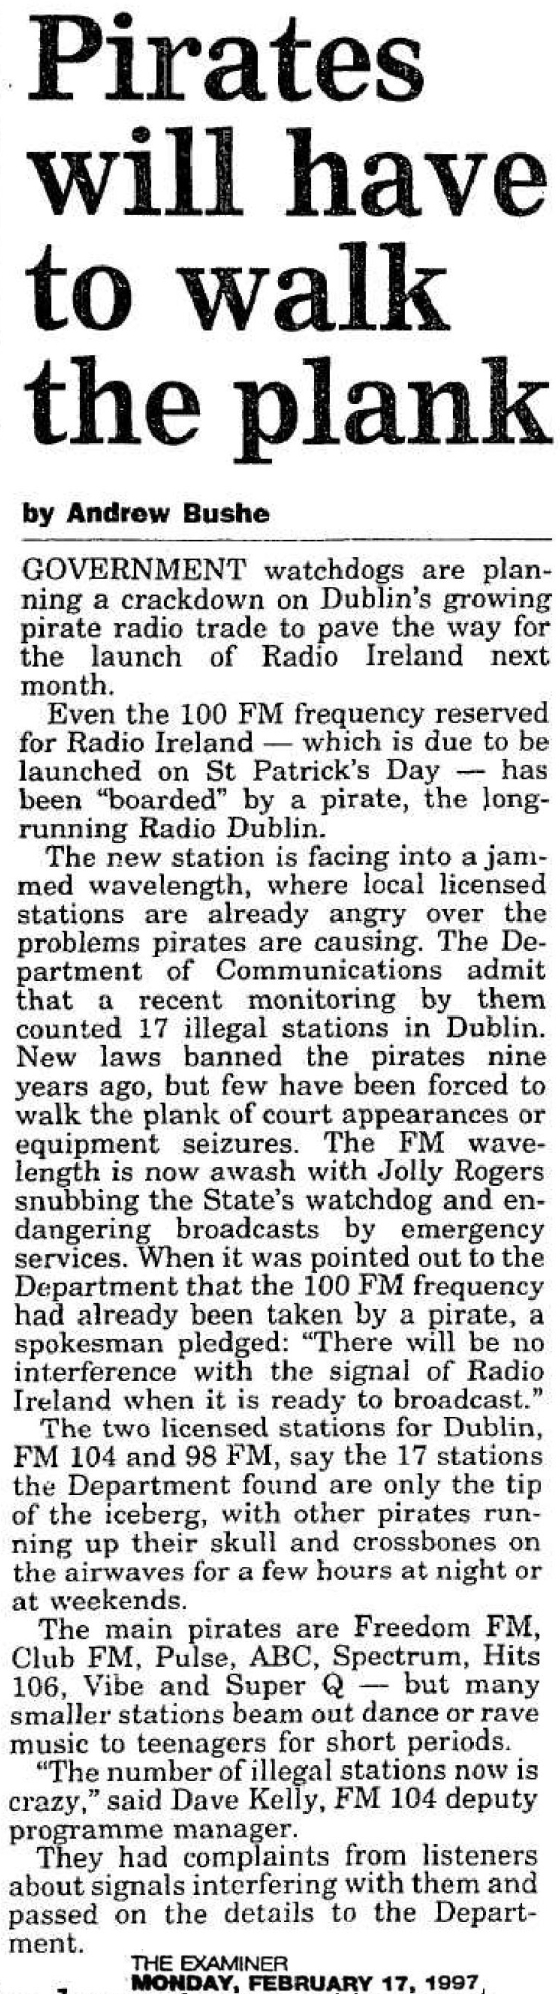 Pirates will have to walk the plank was a headline from The Cork Examiner dated February 17th 1997